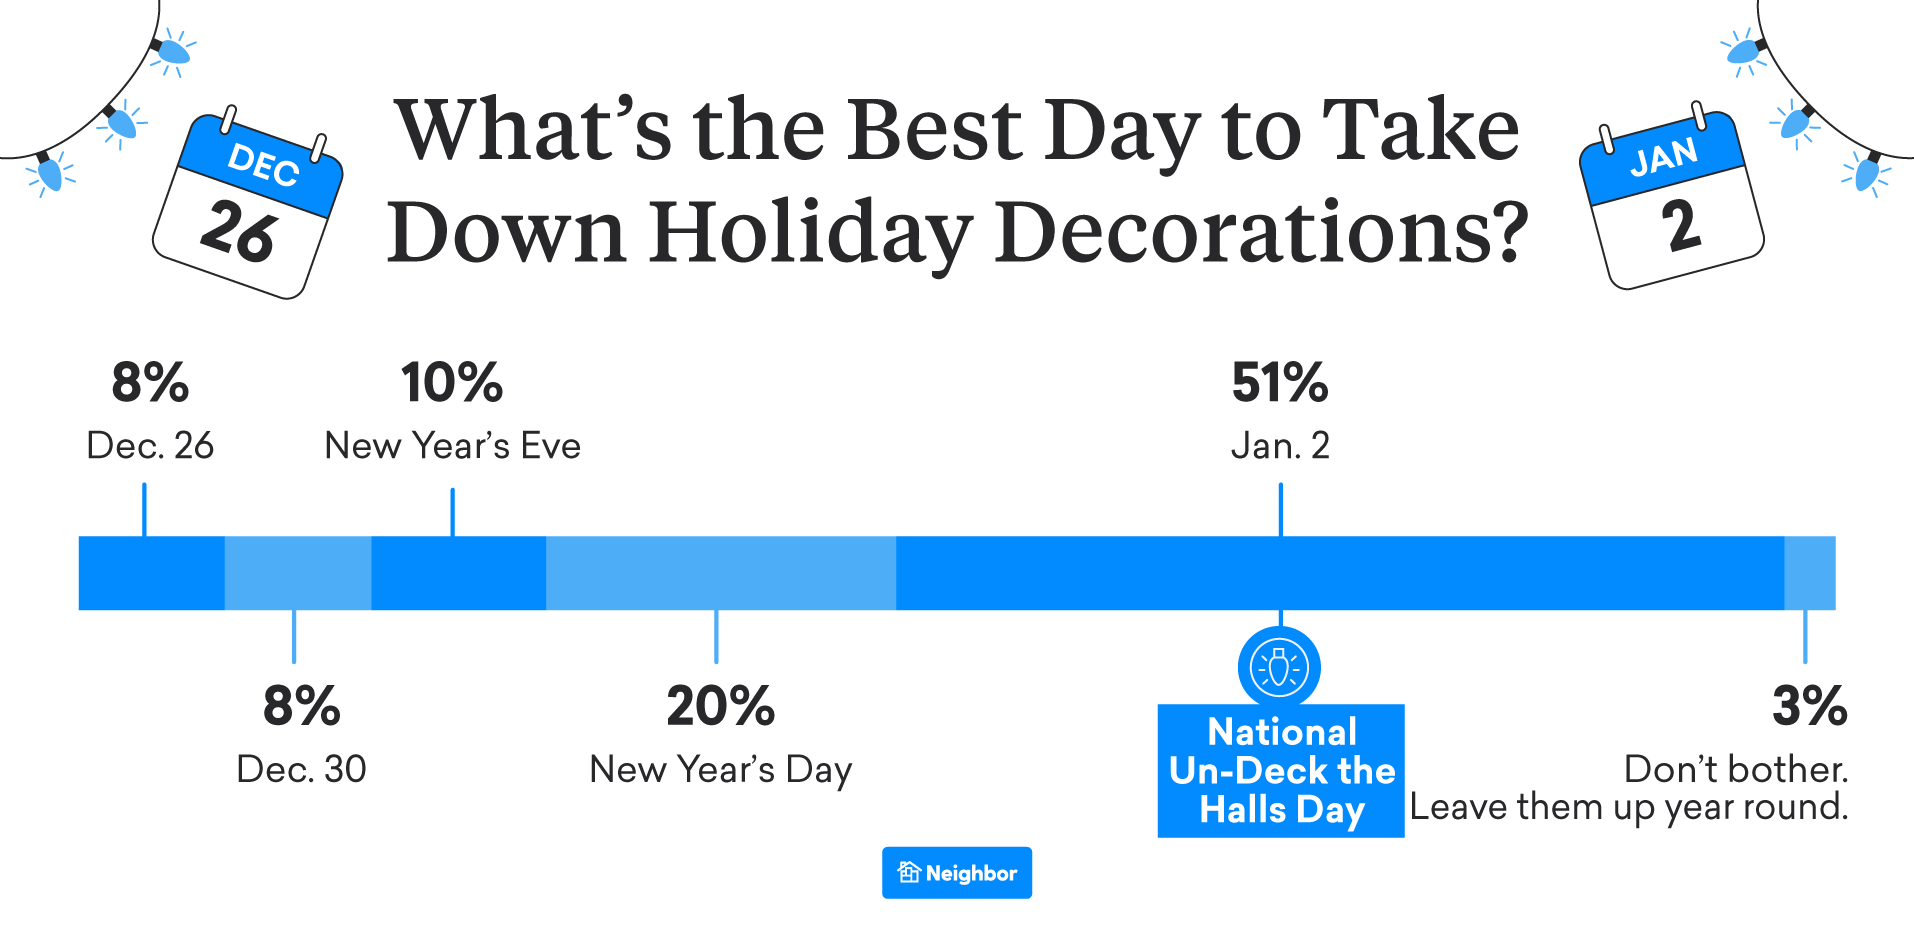 What About Taking Them Down? More Than Half Say After the New Year